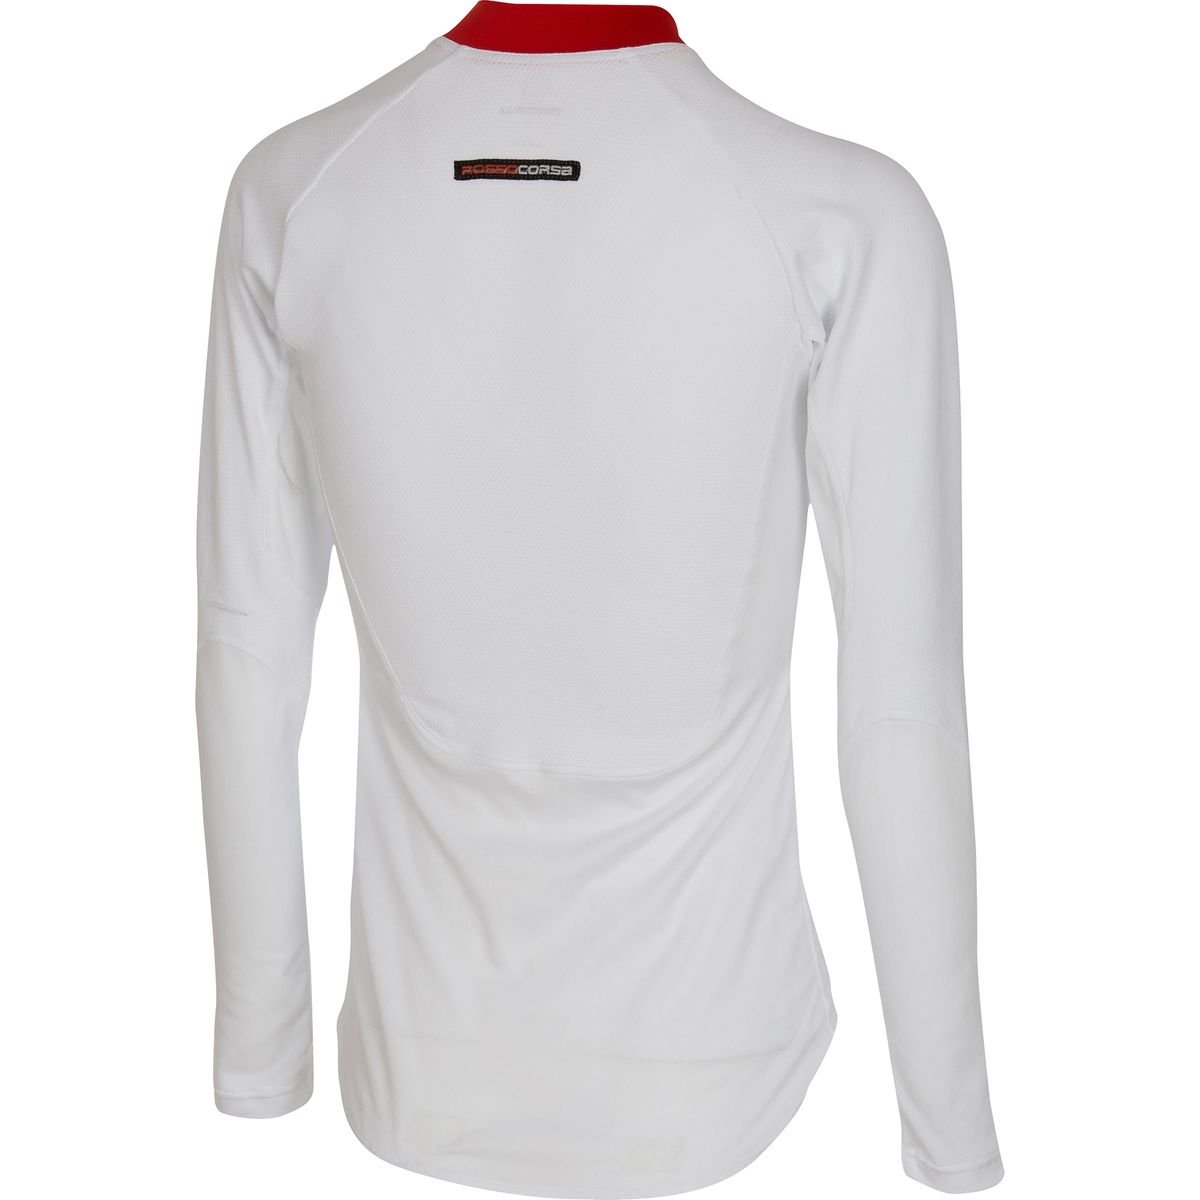 Castelli Prosecco Long-Sleeve Baselayer - Women's White, S